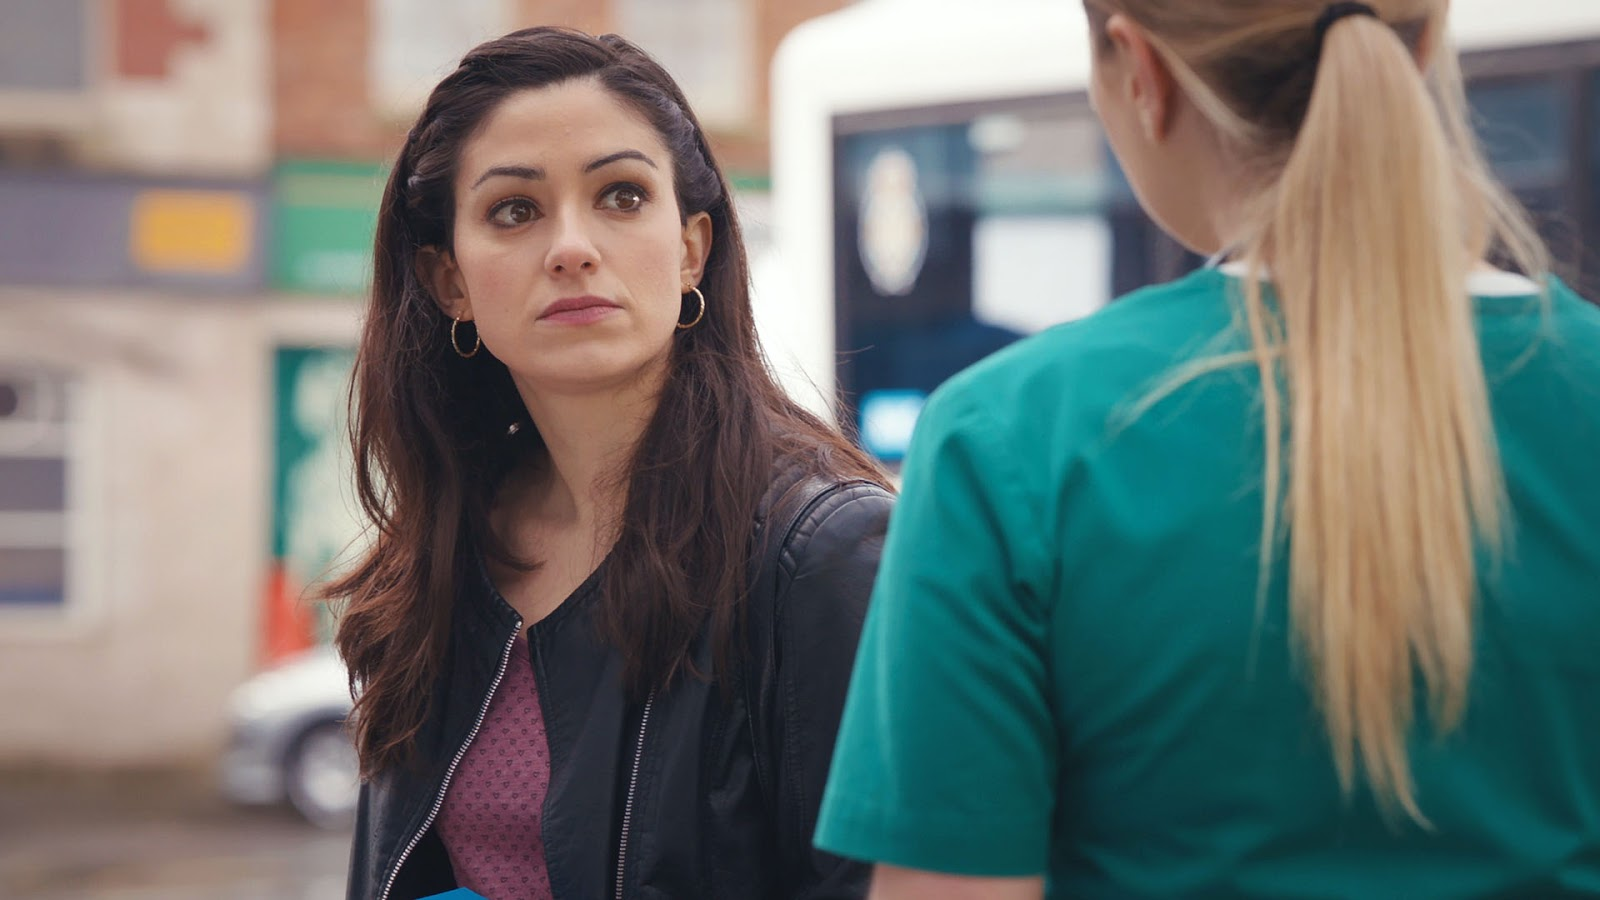 Casualty series 32 episode 40